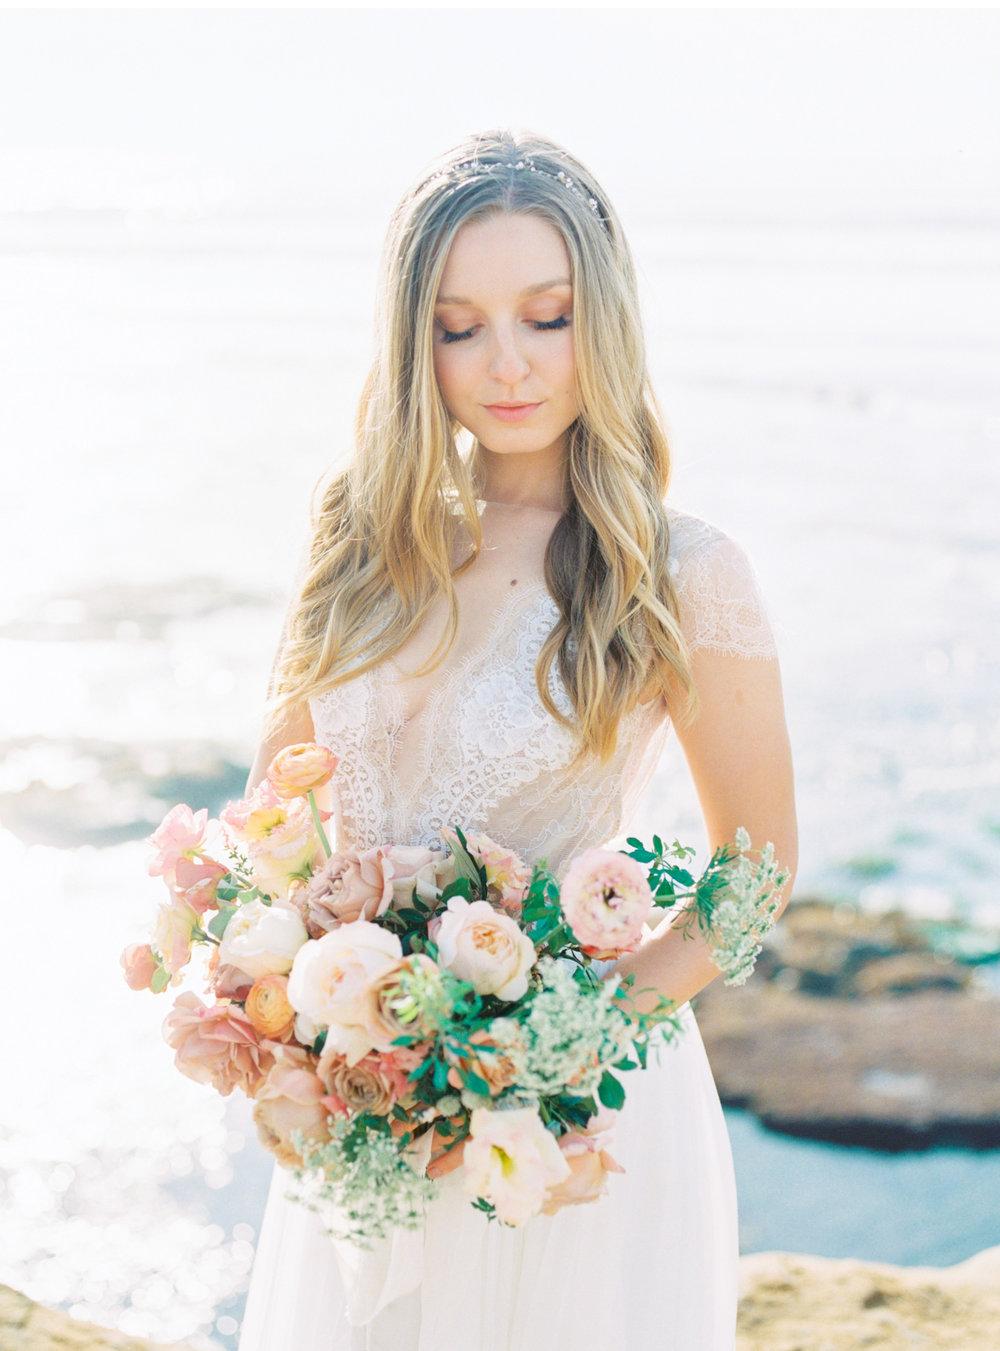 Style-Me-Pretty-California-Beach-Wedding-Natalie-Schutt-Photography_10.jpg